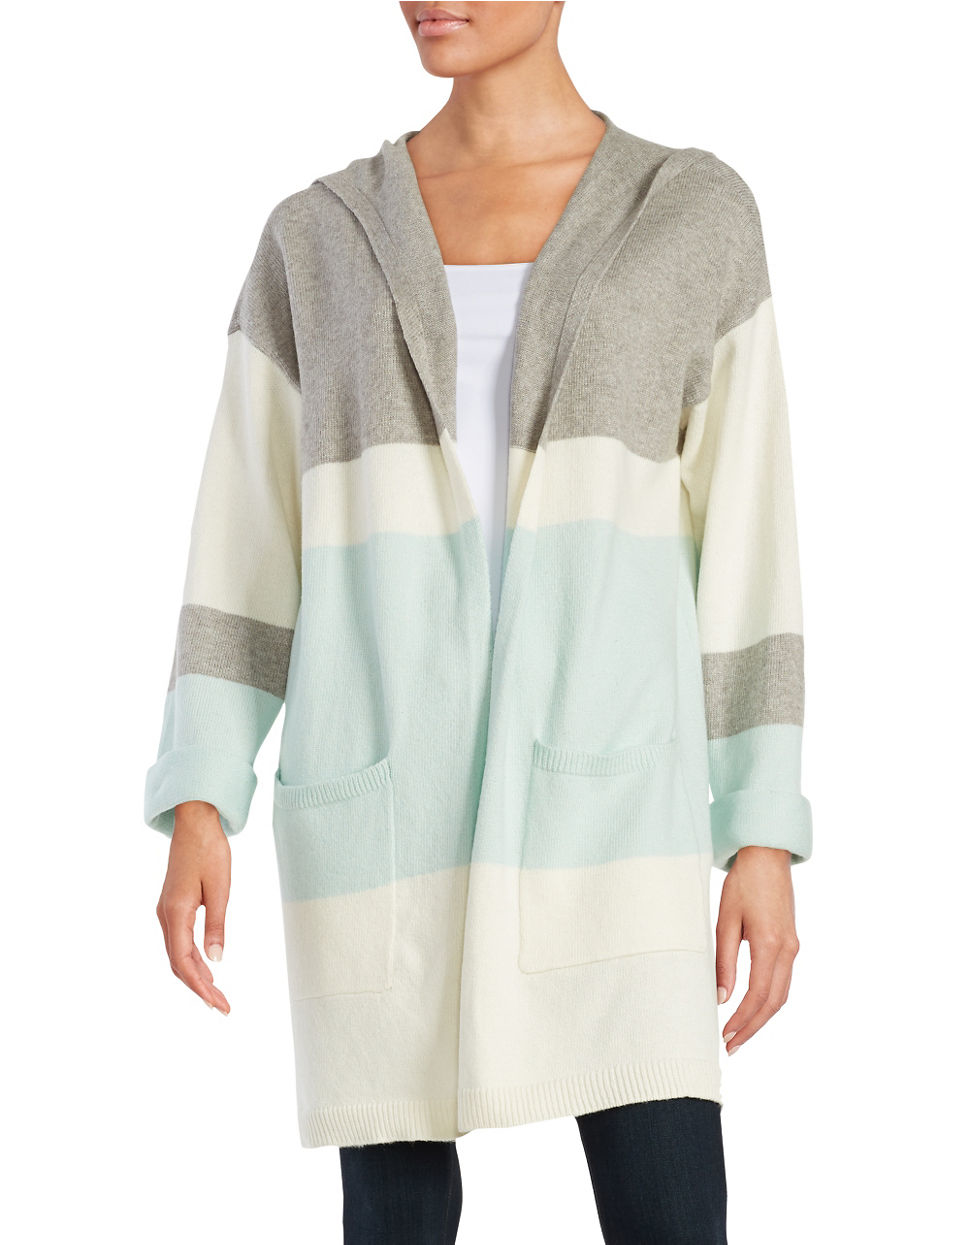 Vince camuto Petite Hooded Colorblocked Sweater in Blue | Lyst